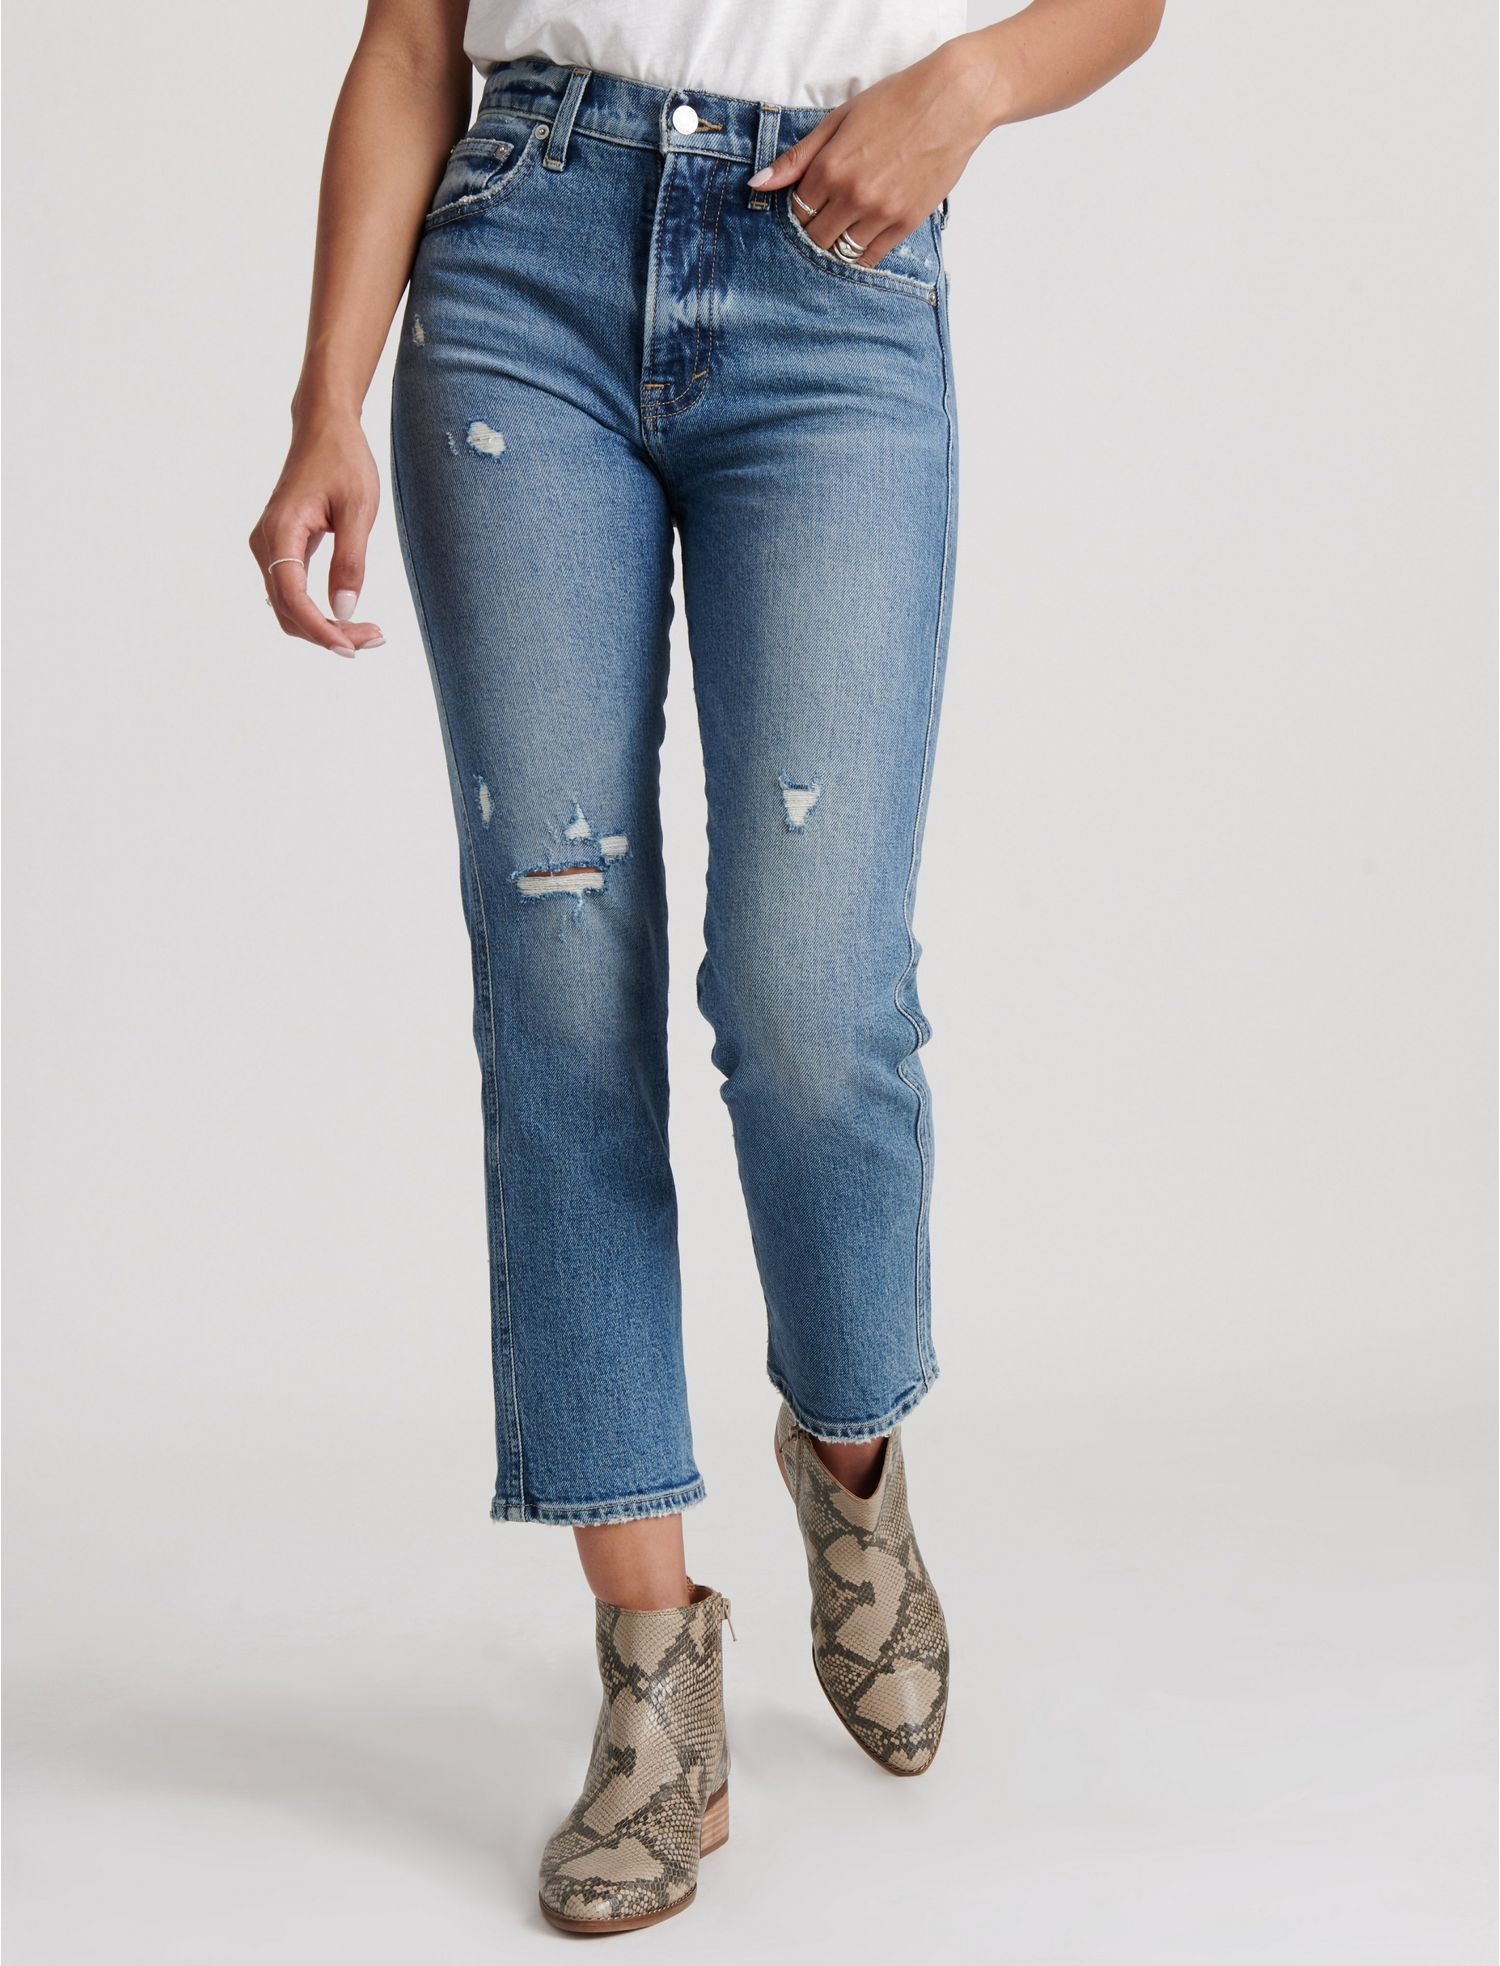 lucky brand jeans sale